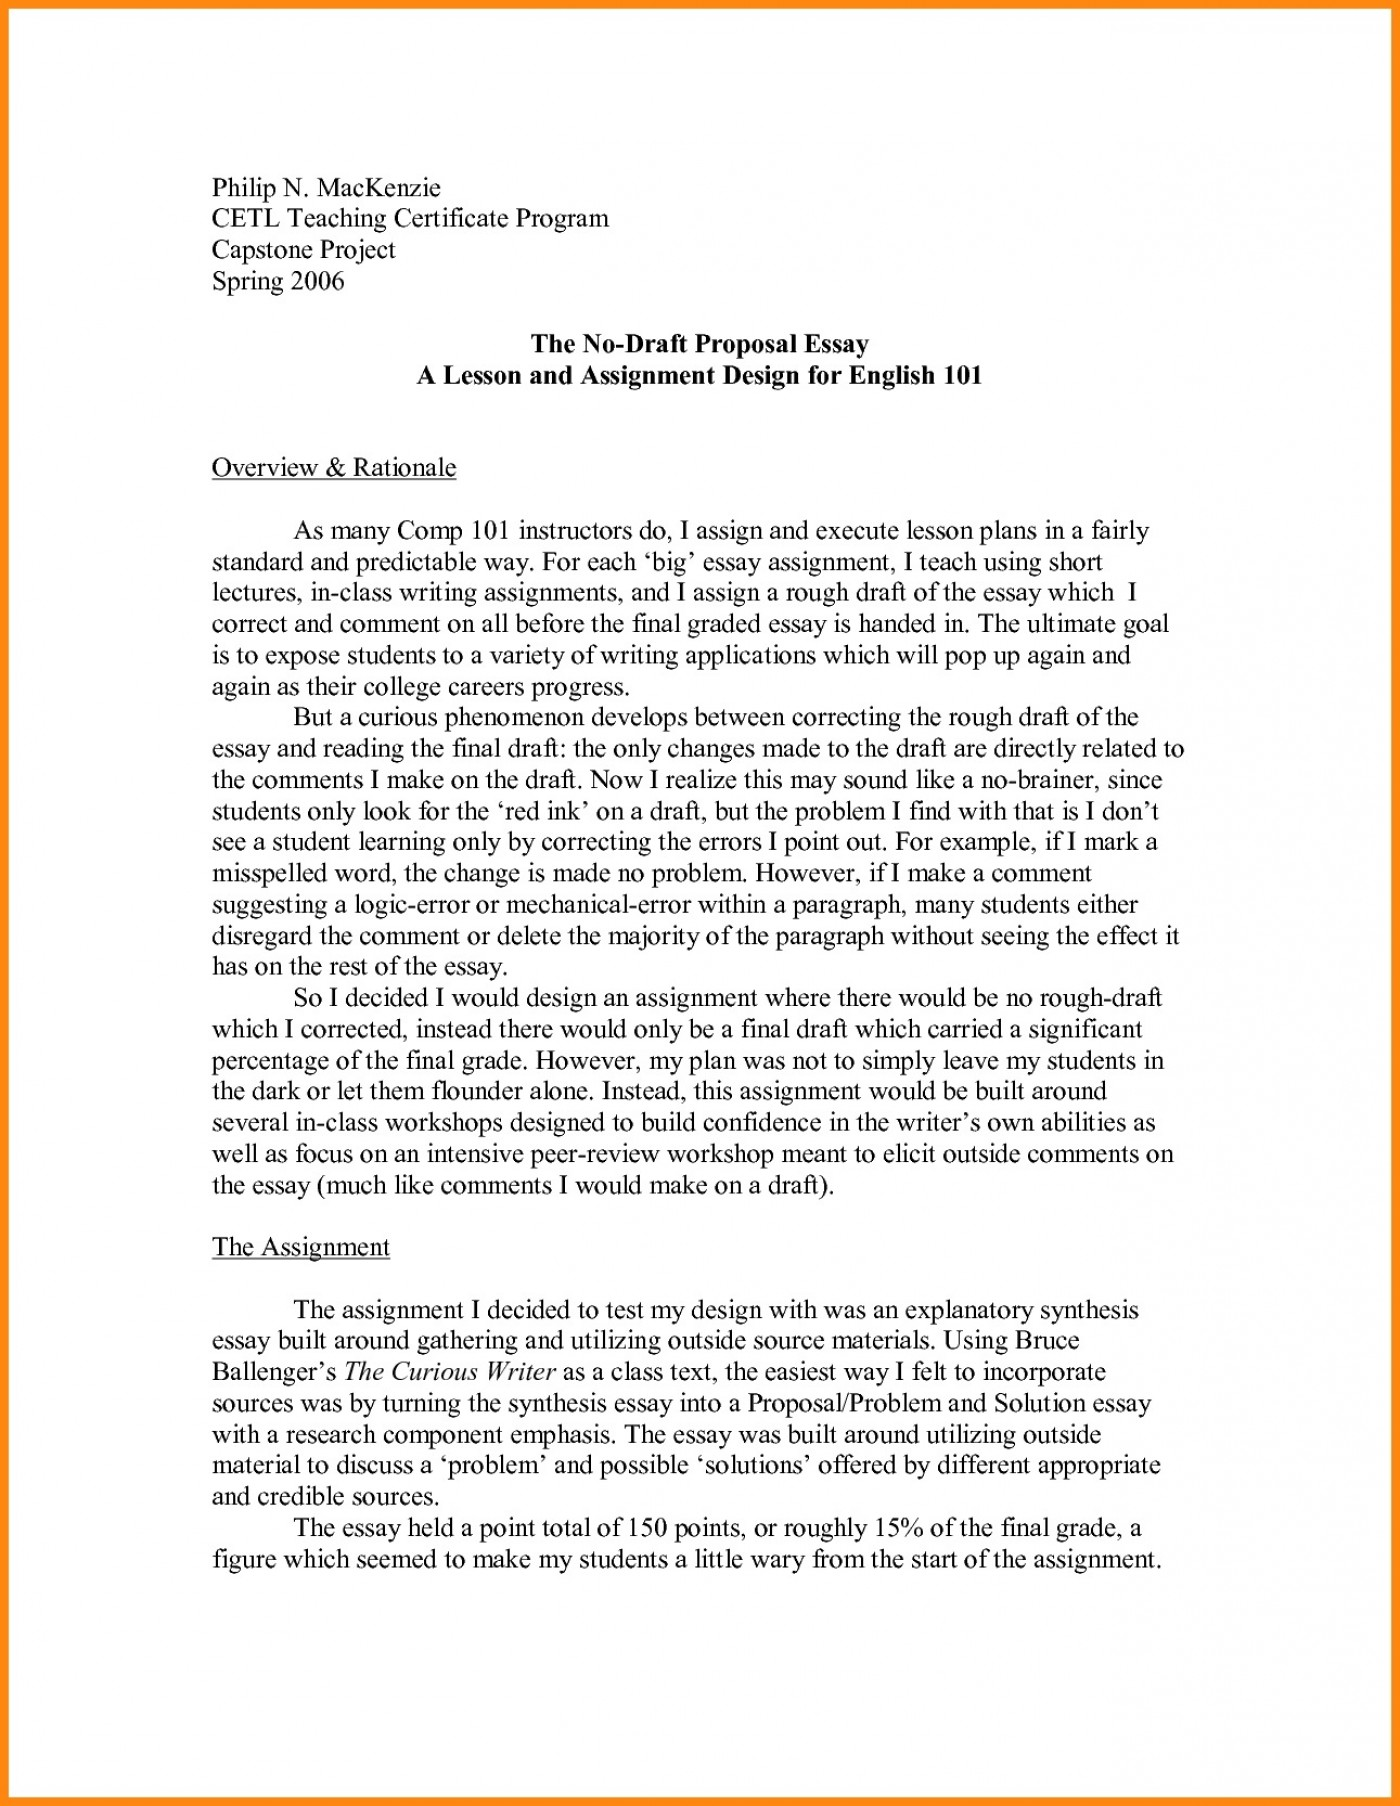 019 Research Paper Papers Topics For Finance Topic Proposal Example Essay At Phenomenal High School Students In Management 1400